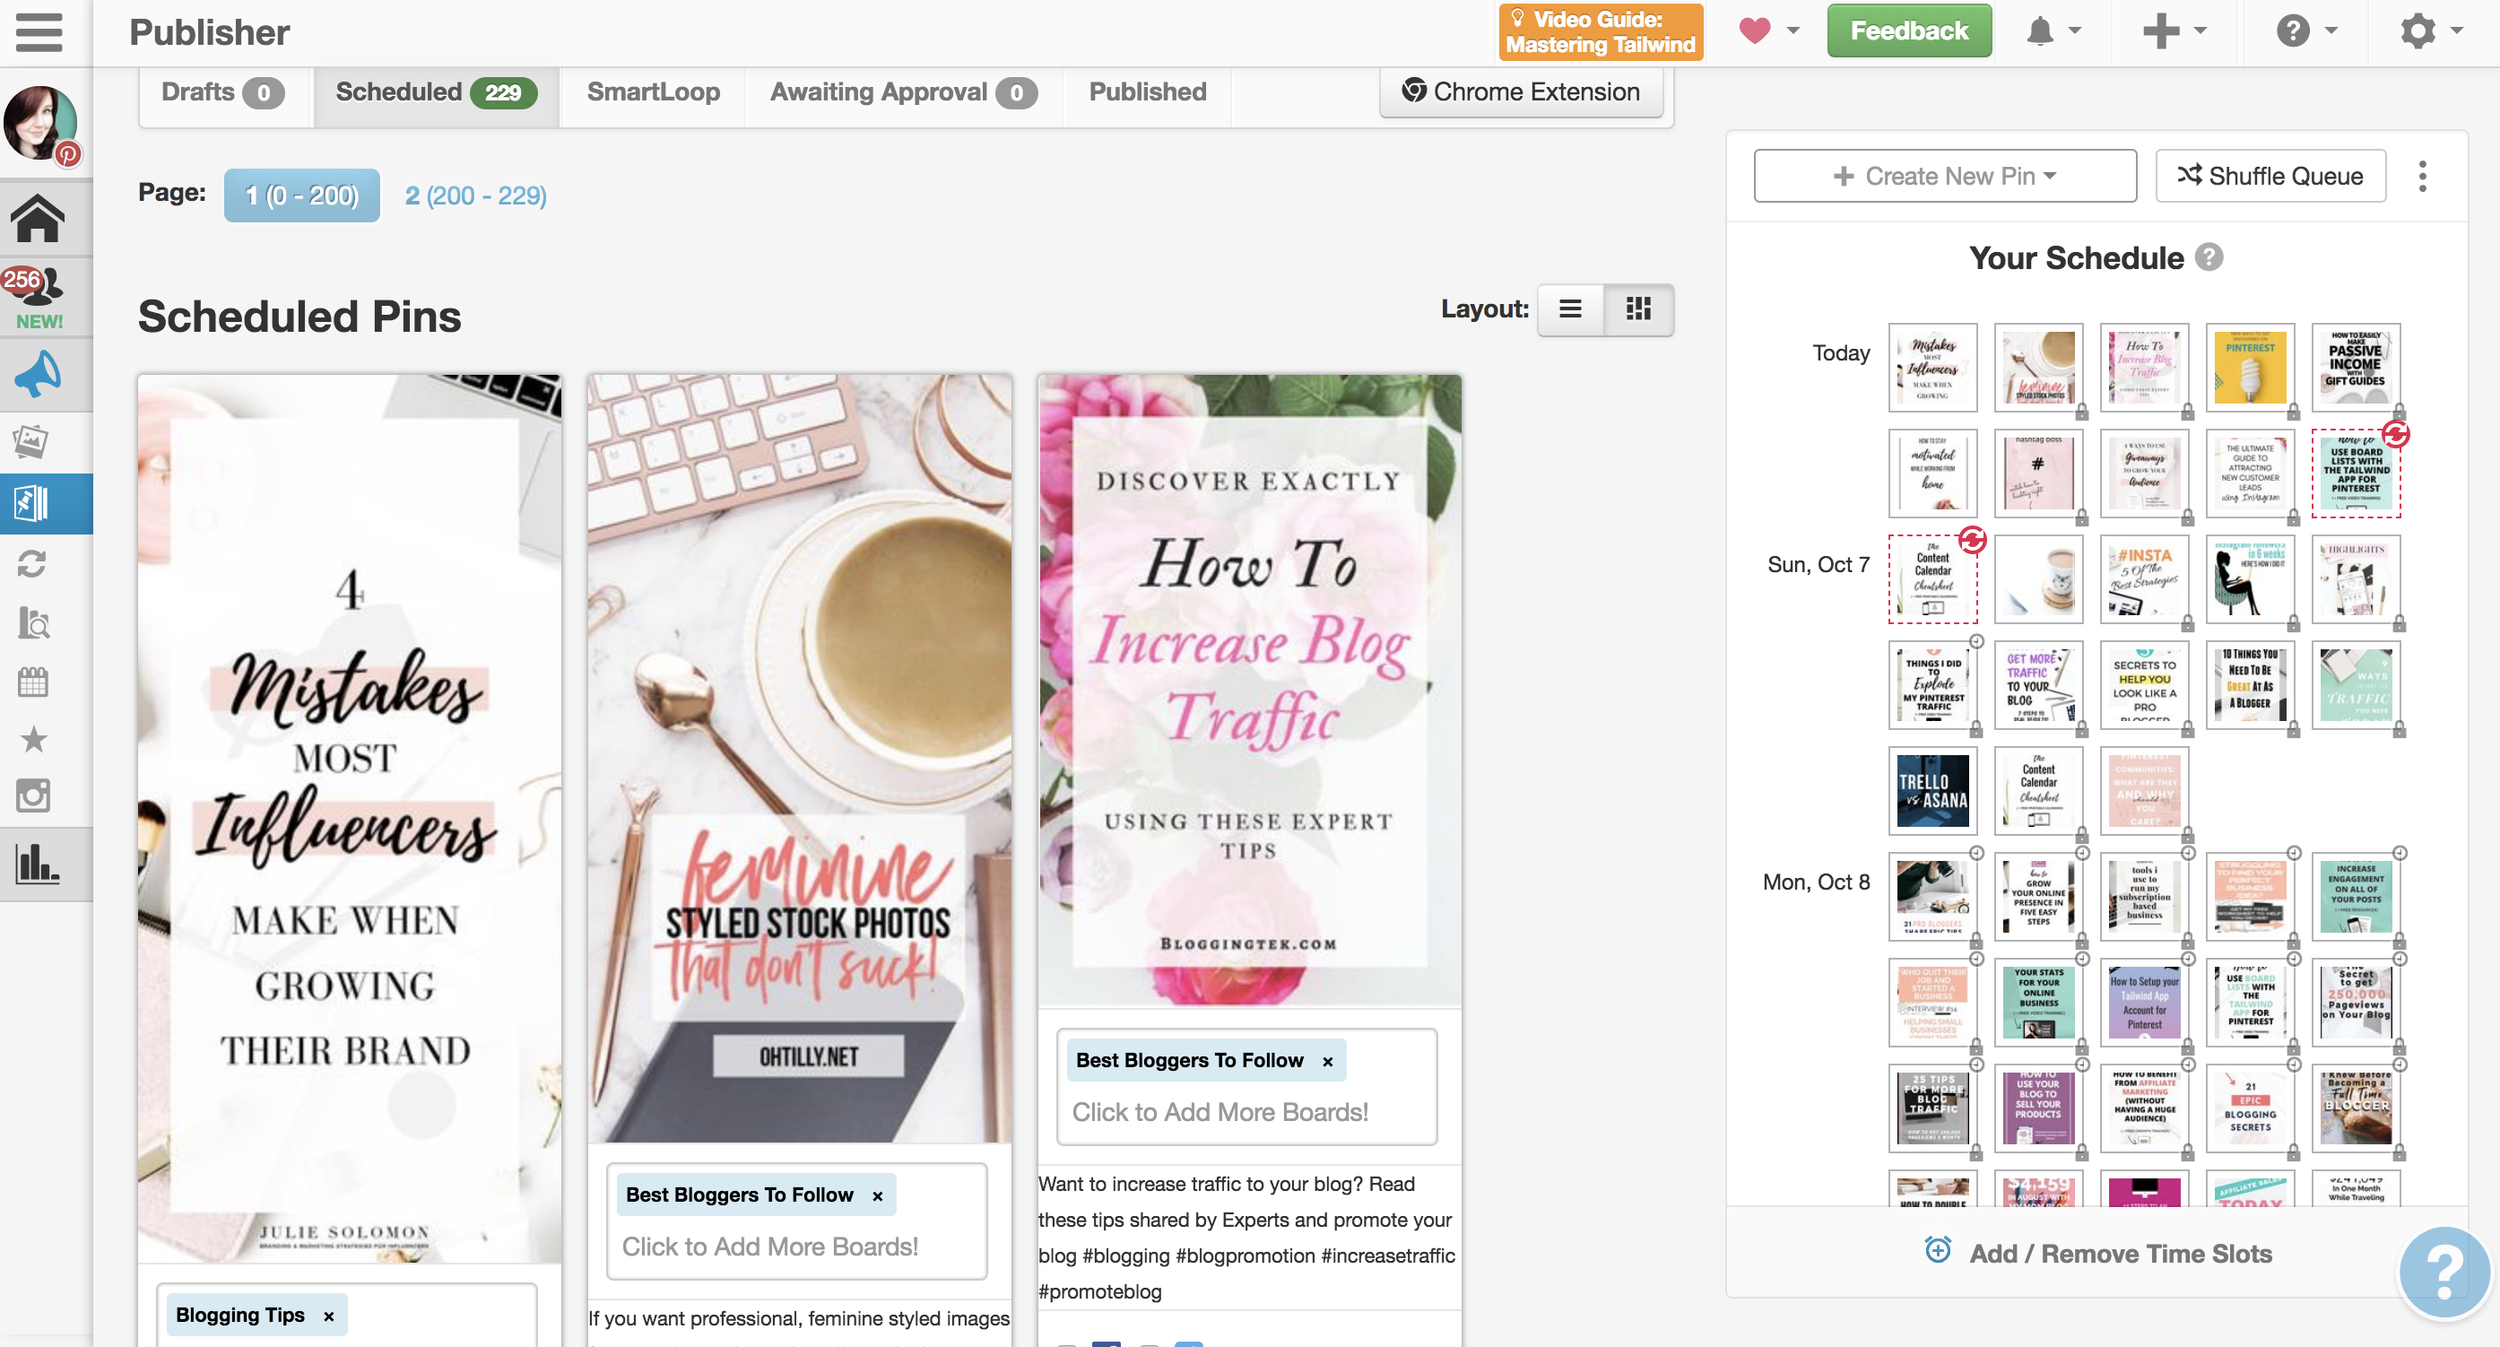 How to Setup your Tailwind App Account for Pinterest #tailwindapp #pinterestmarketing